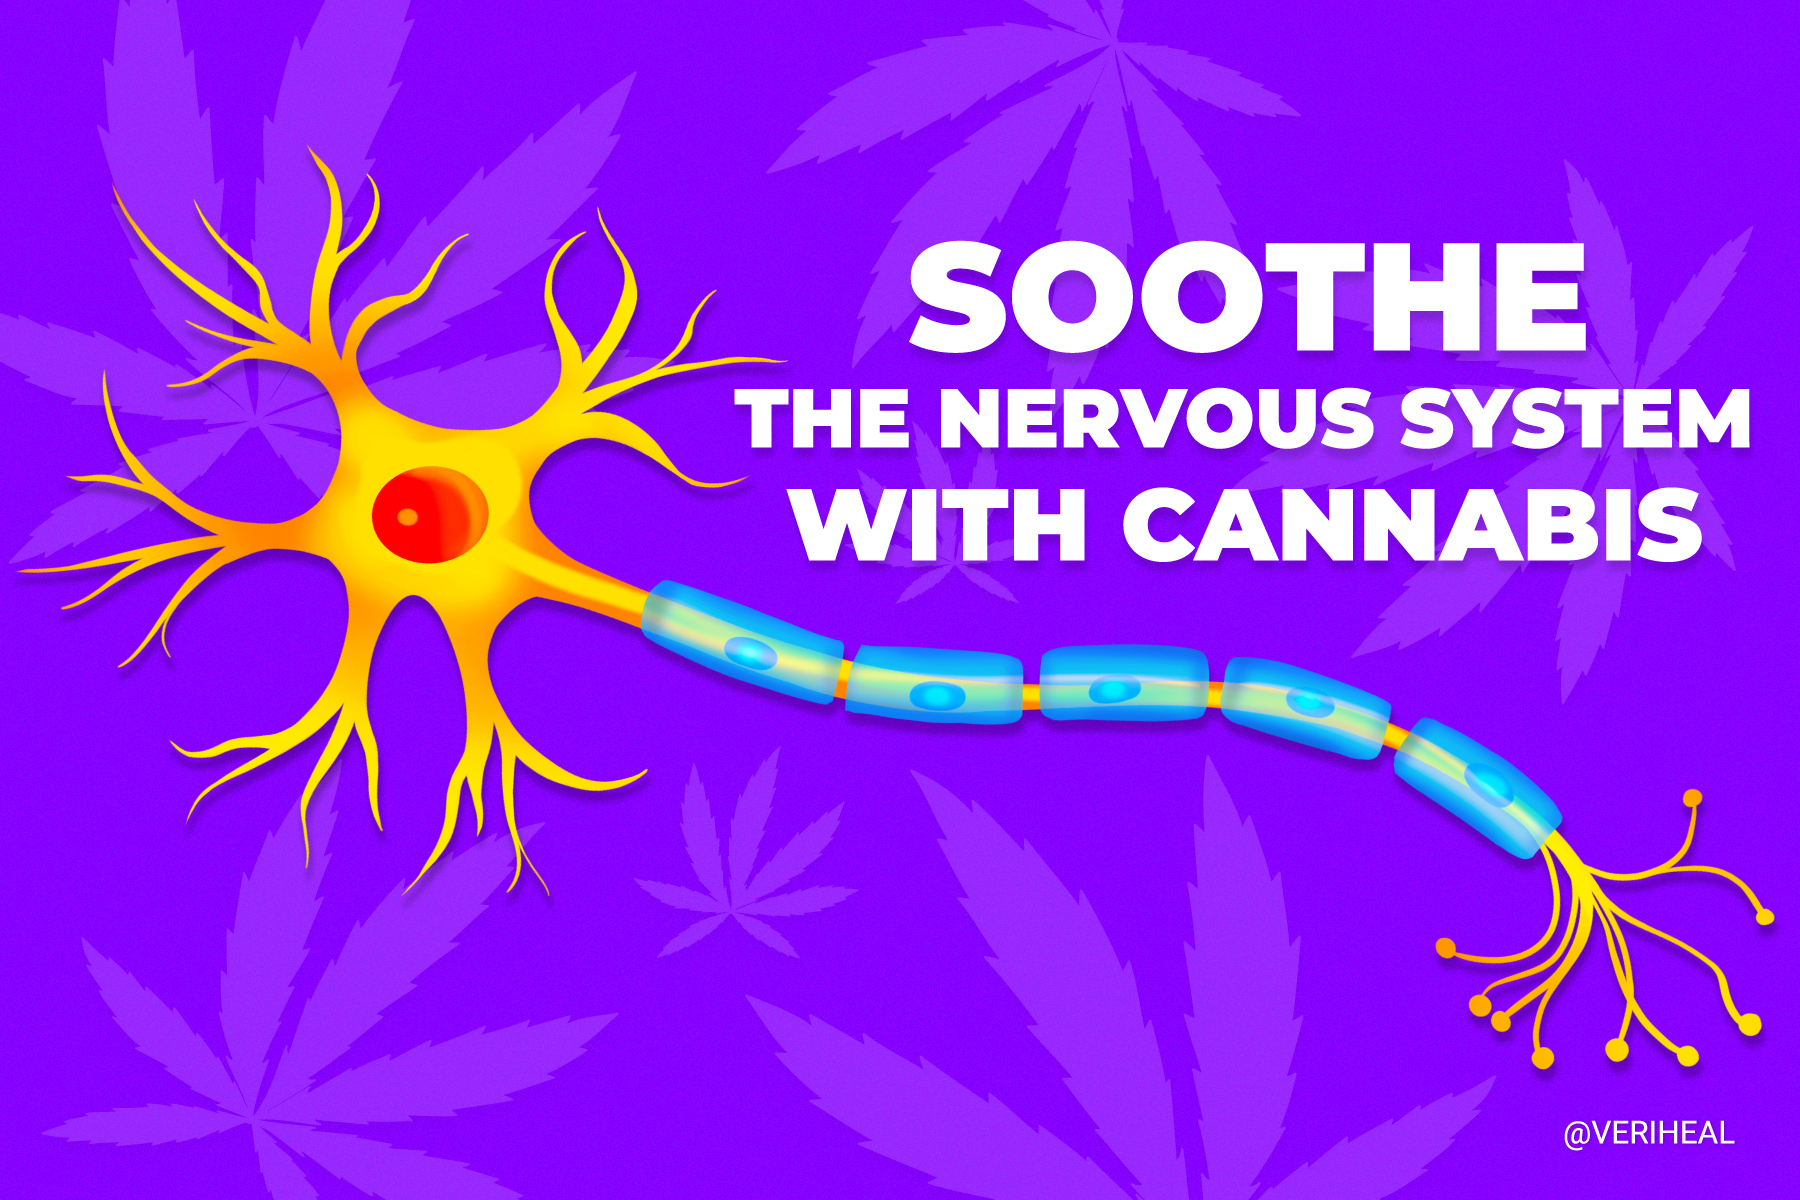 Tips on How to Soothe the Nervous System With Cannabis